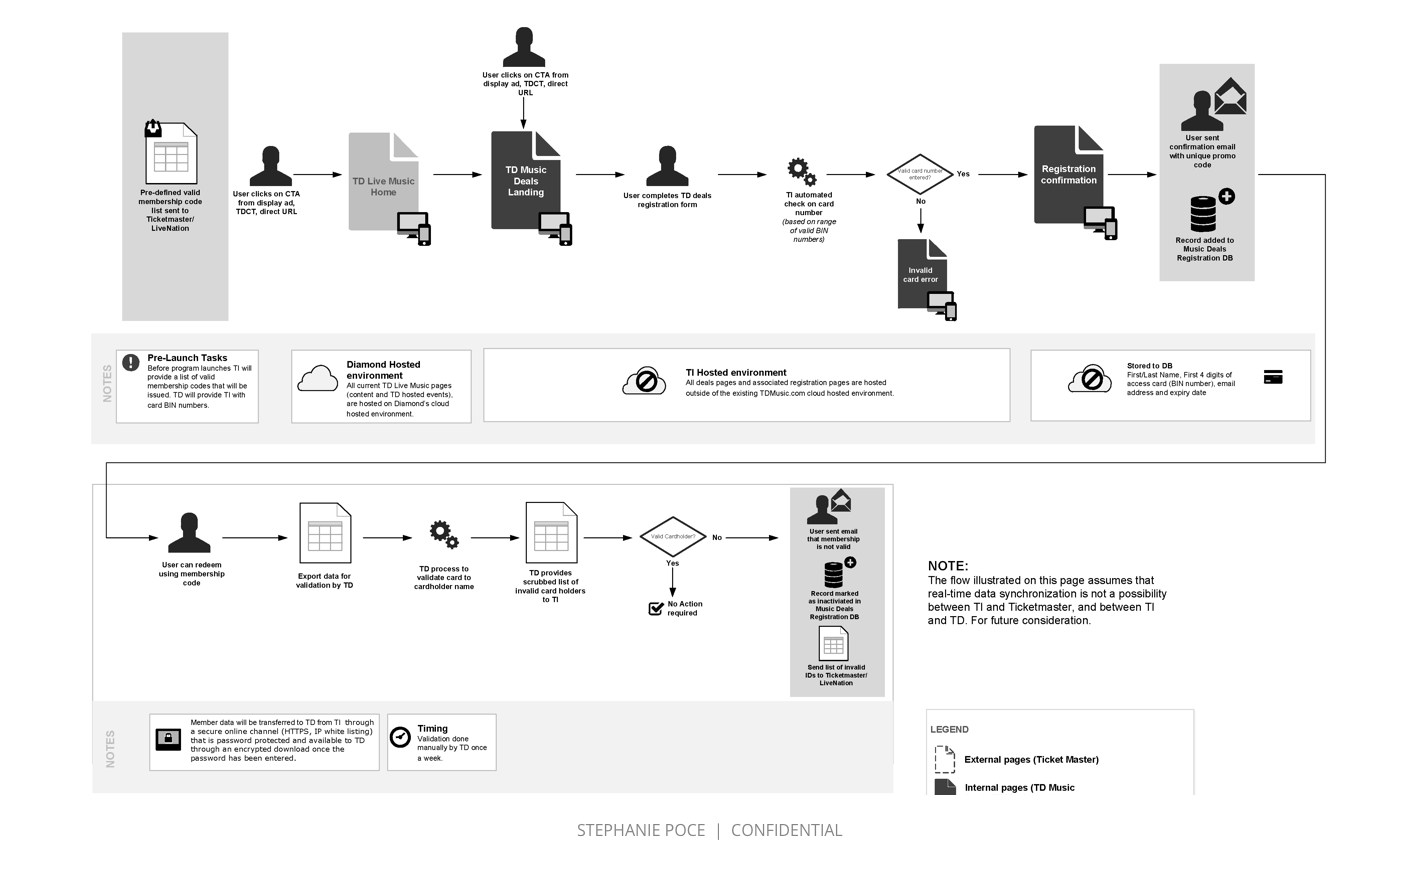 Process Flow - This registration process flow (excerpted from a larger set of flows created for this project) illustrates the process of registering for TD Music Access. This website allowed TD customers to access discounted concert tickets and merchandise. The flow depicts how information is stored and transferred within the system along with back-end processes and requirements.